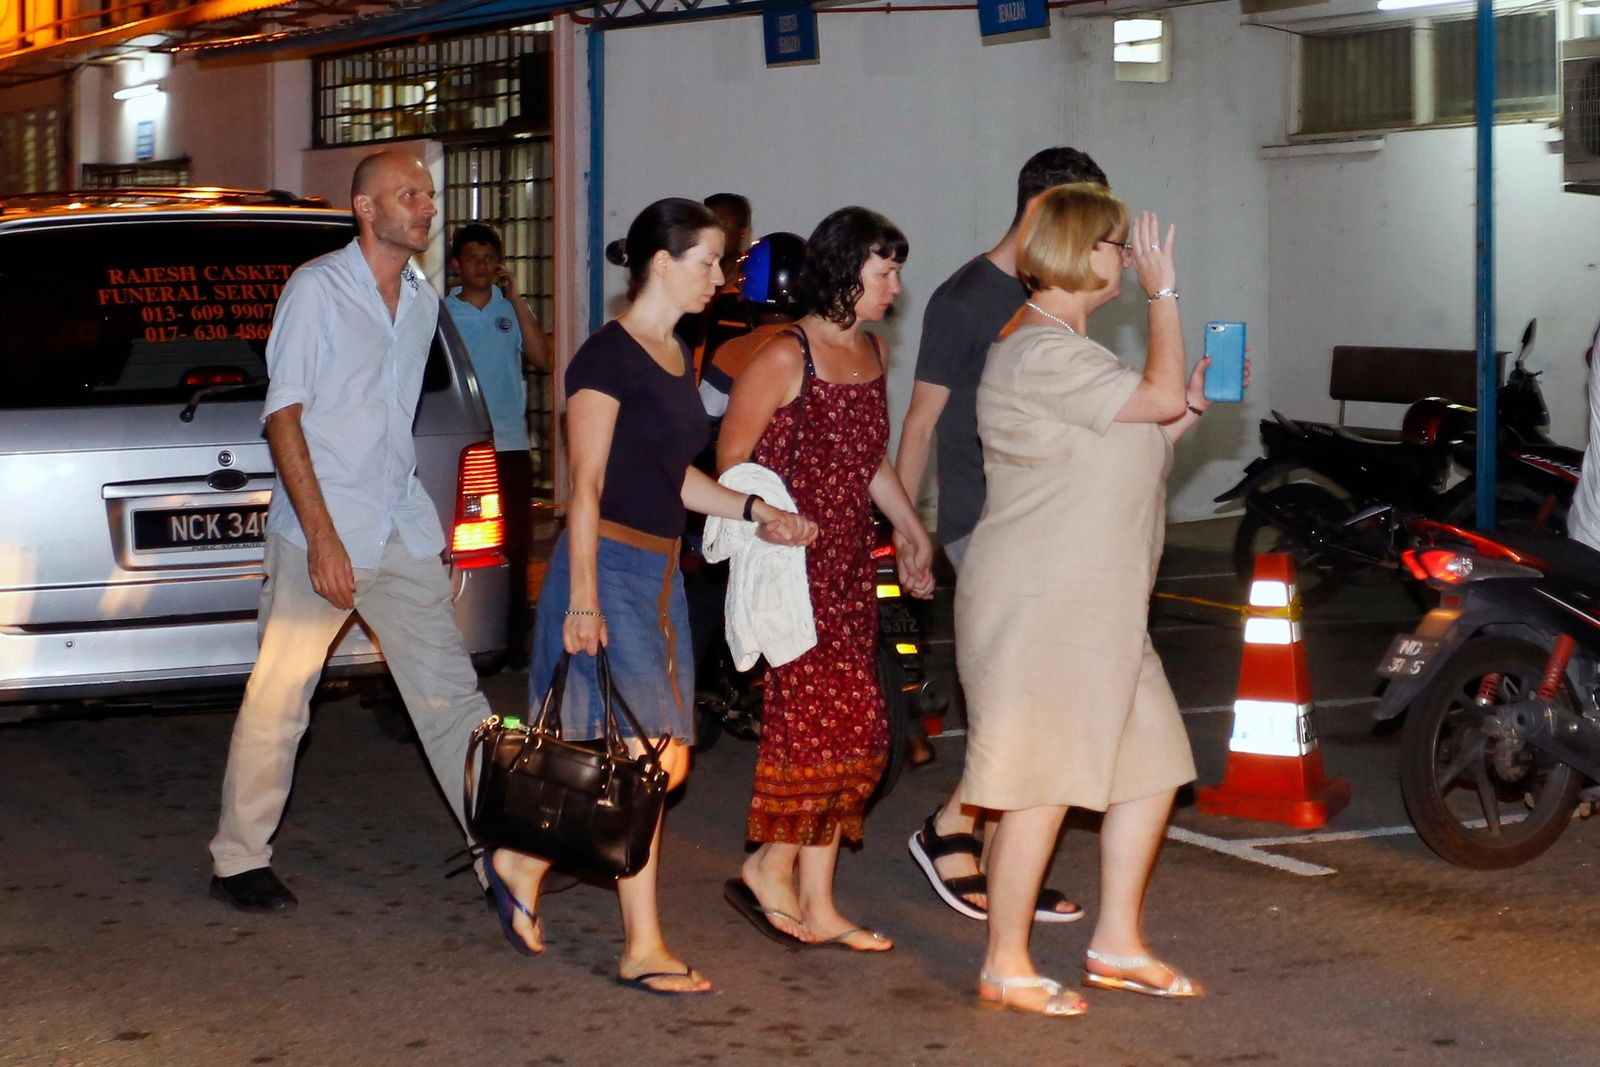 Family members of missing British girl Nora Anne Quoirin arrive at a hospital morgue in Seremban, Negeri Sembilan, Malaysia, Tuesday, Aug. 13, 2019.{ } (AP Photo/Lai Seng Sin)